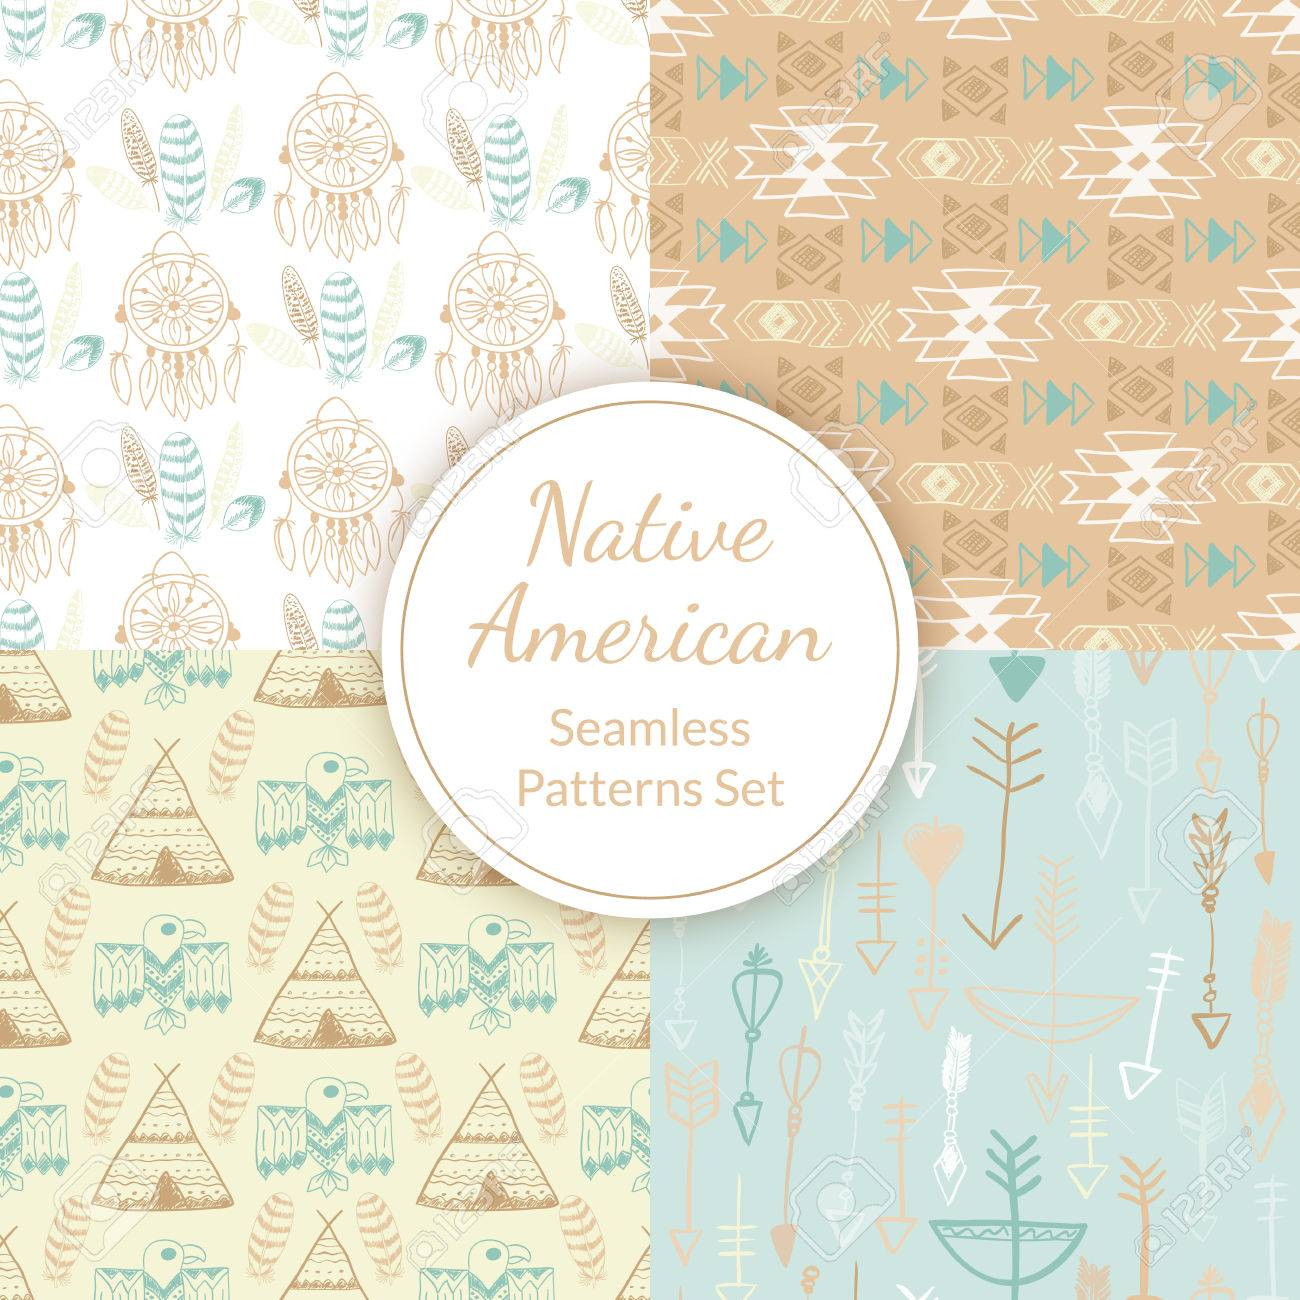 Native American Seamless Patterns Set With Dreamcatcher Arrows